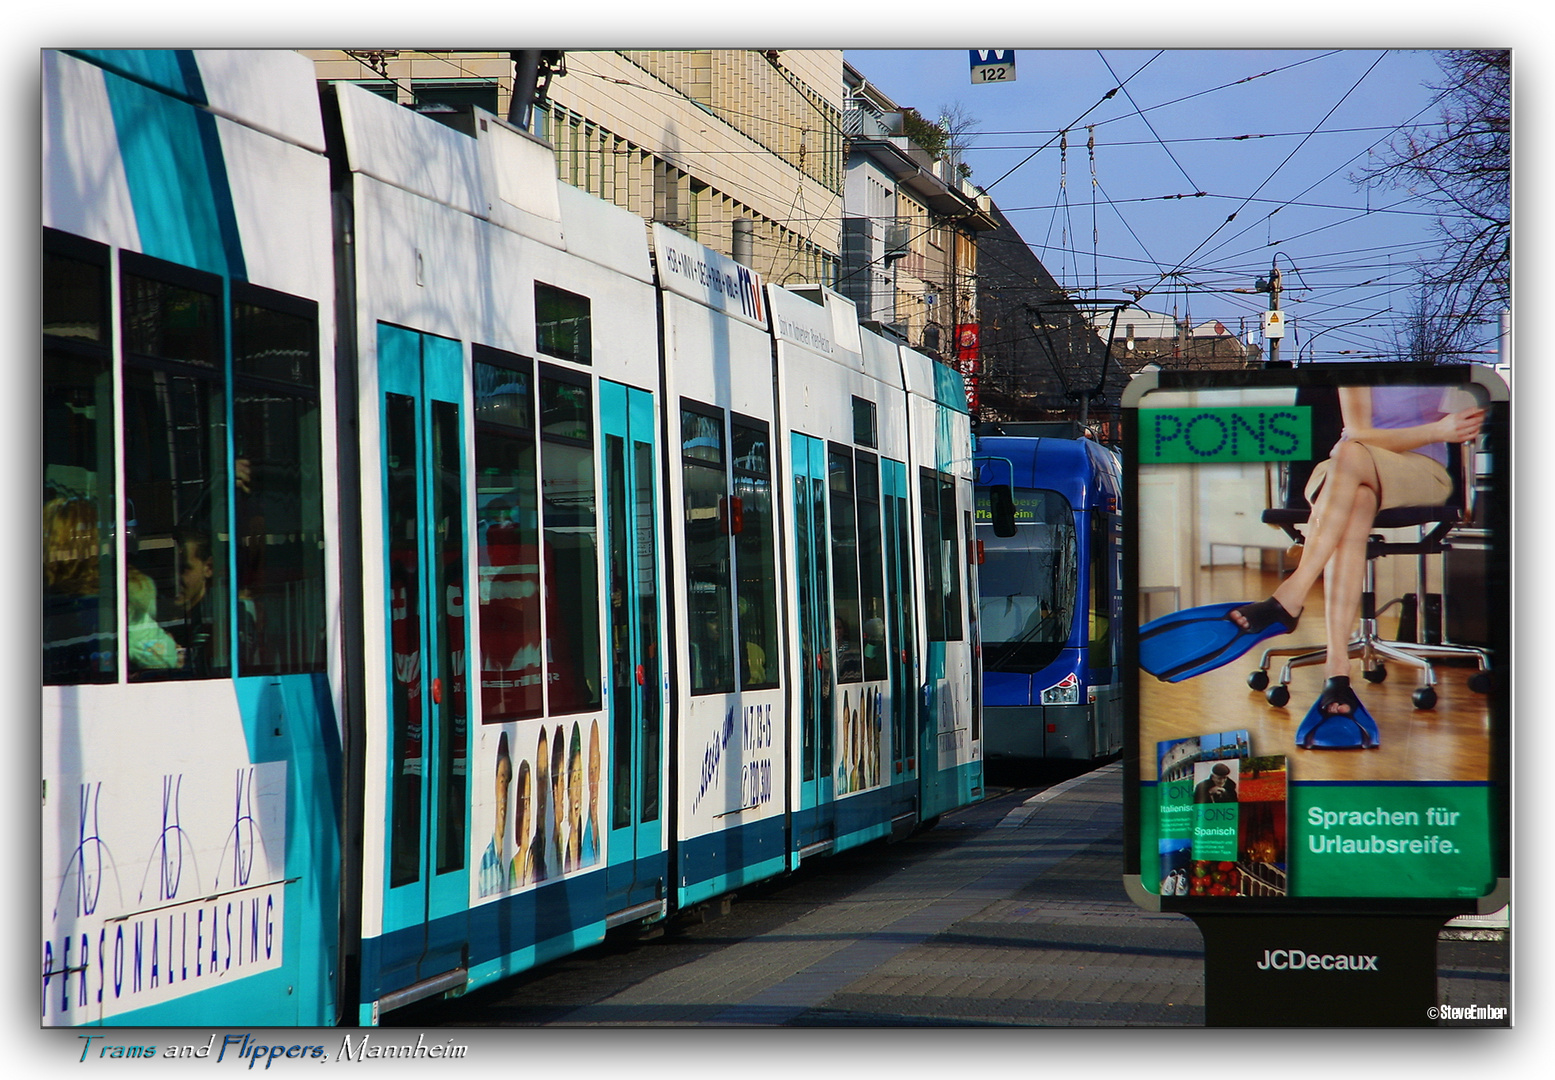 Trams and Flippers, Mannheim